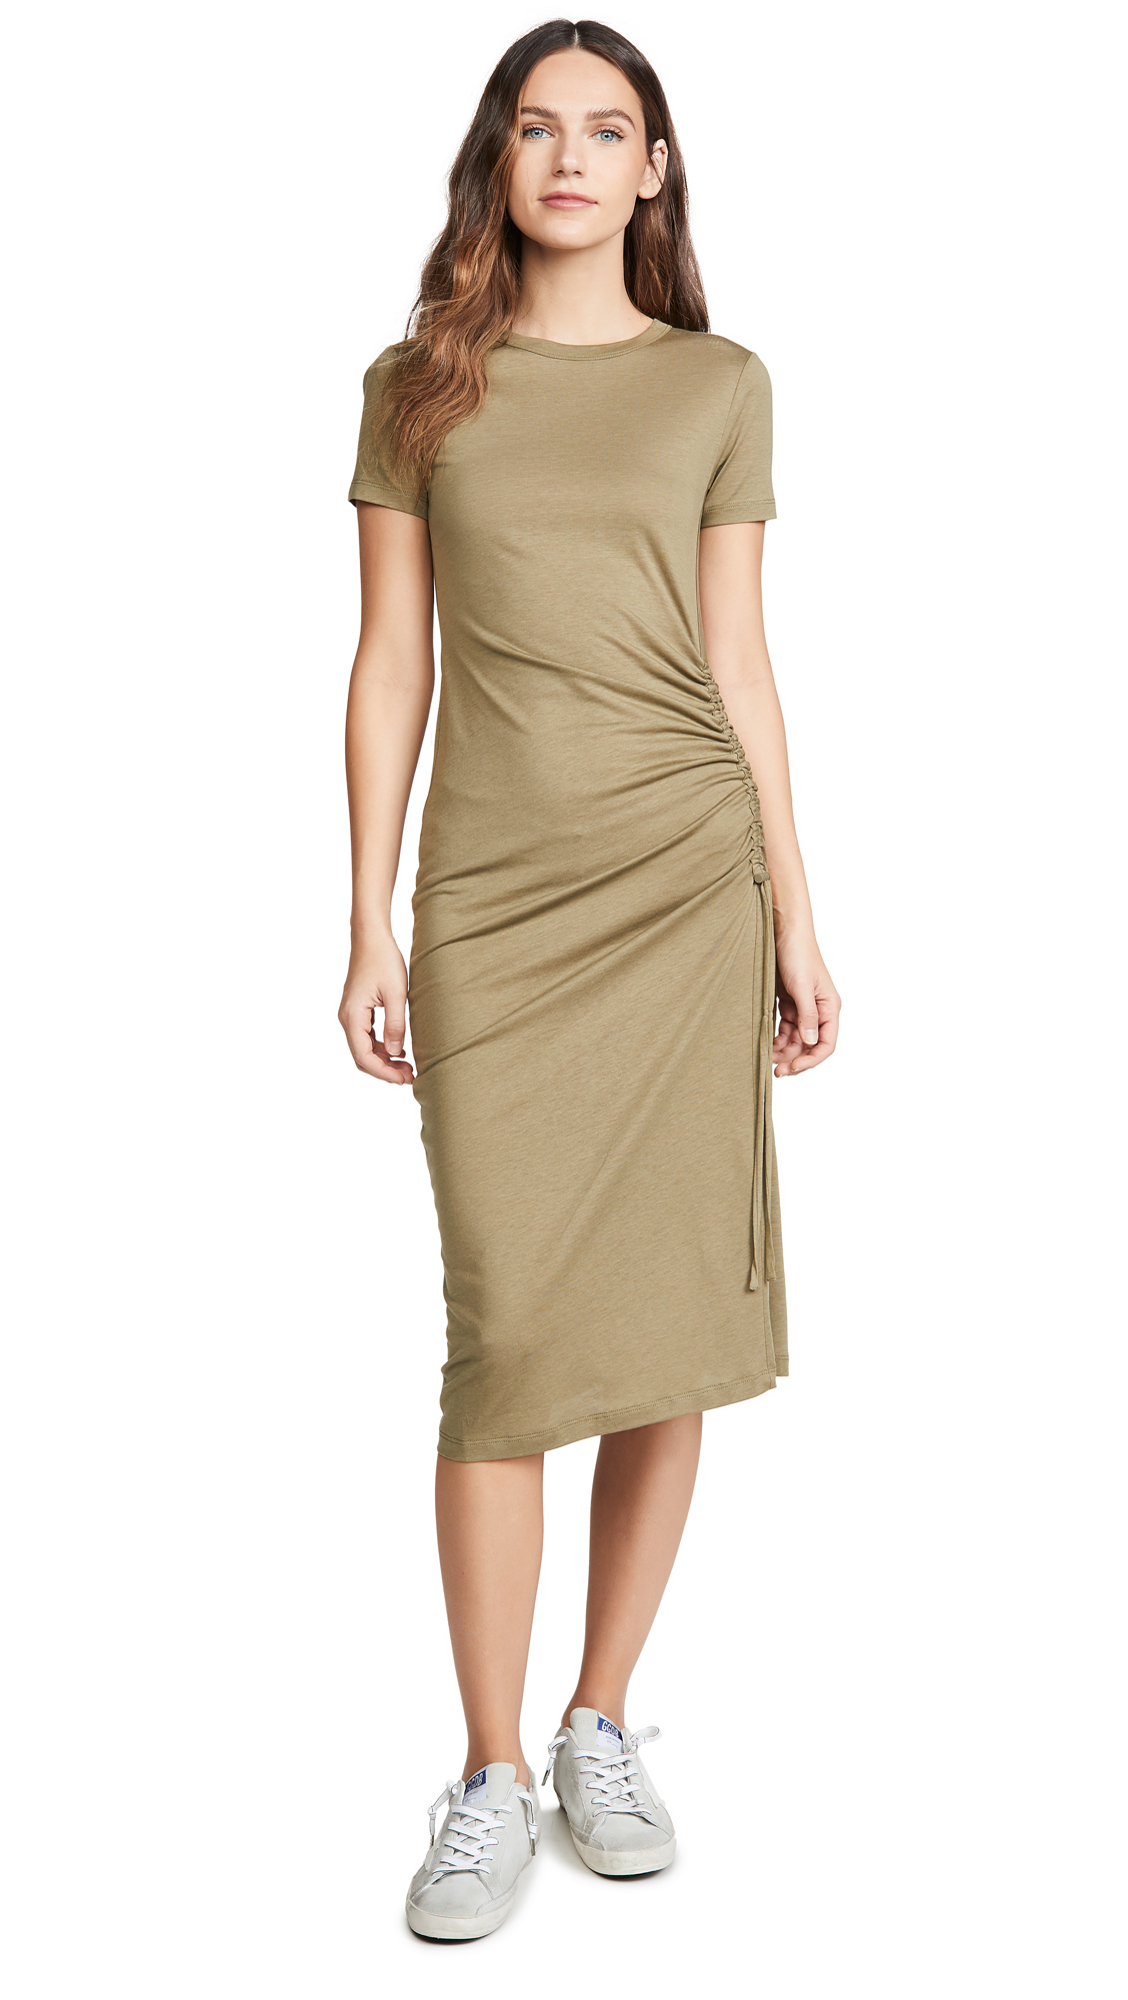 Rag & Bone Ina Dress - 30% Off Sale